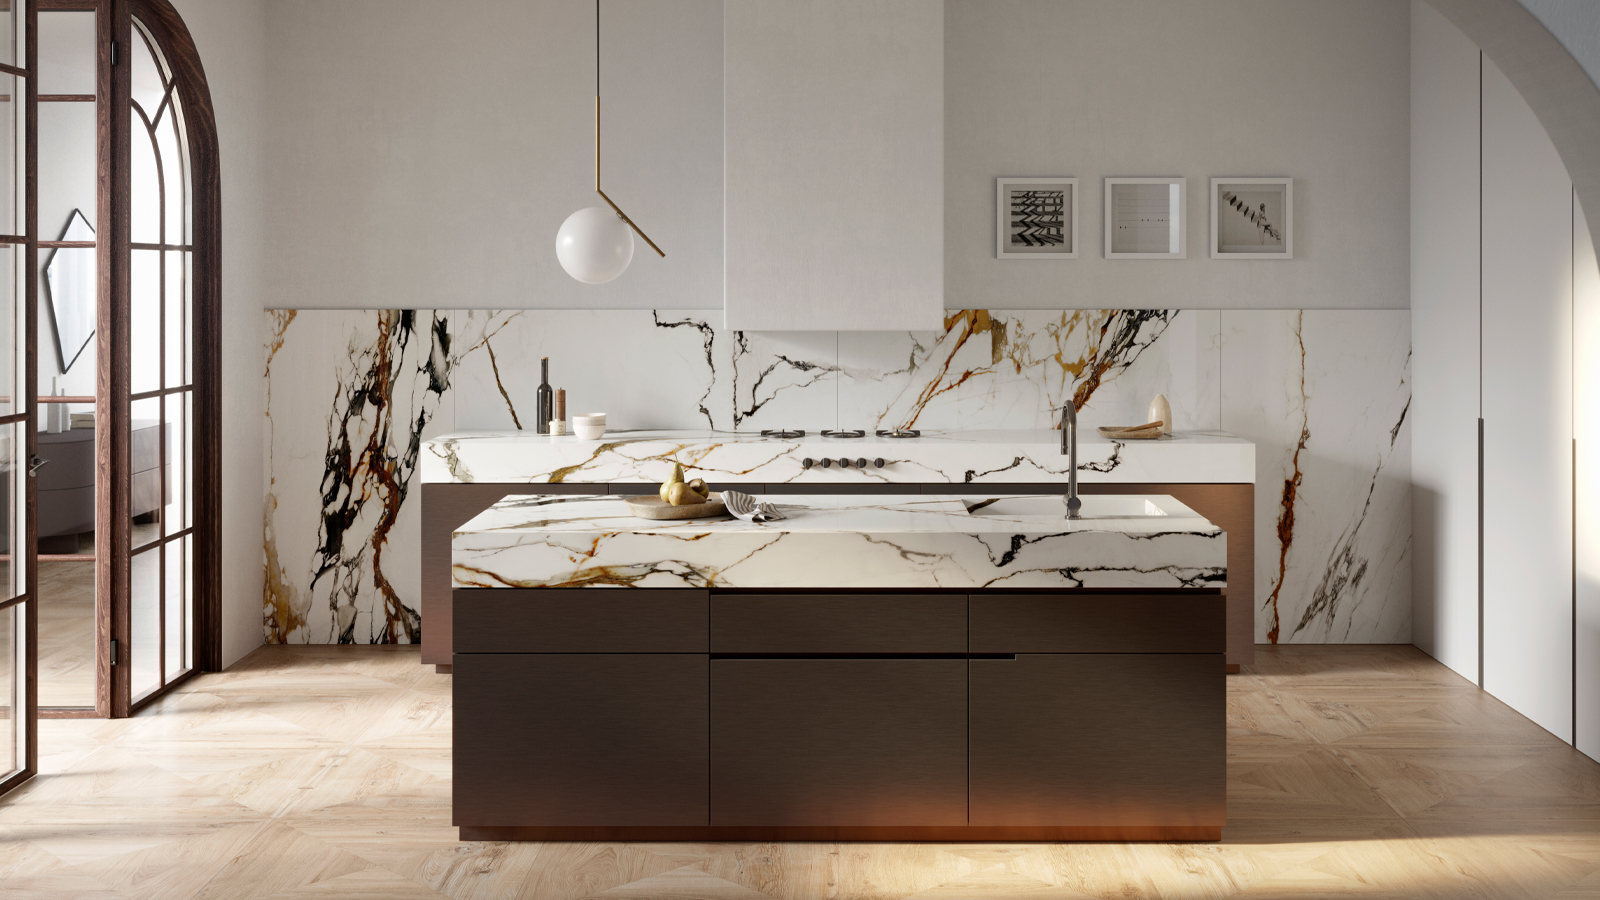 New collections from XTONE recreate the elegance of classic marble